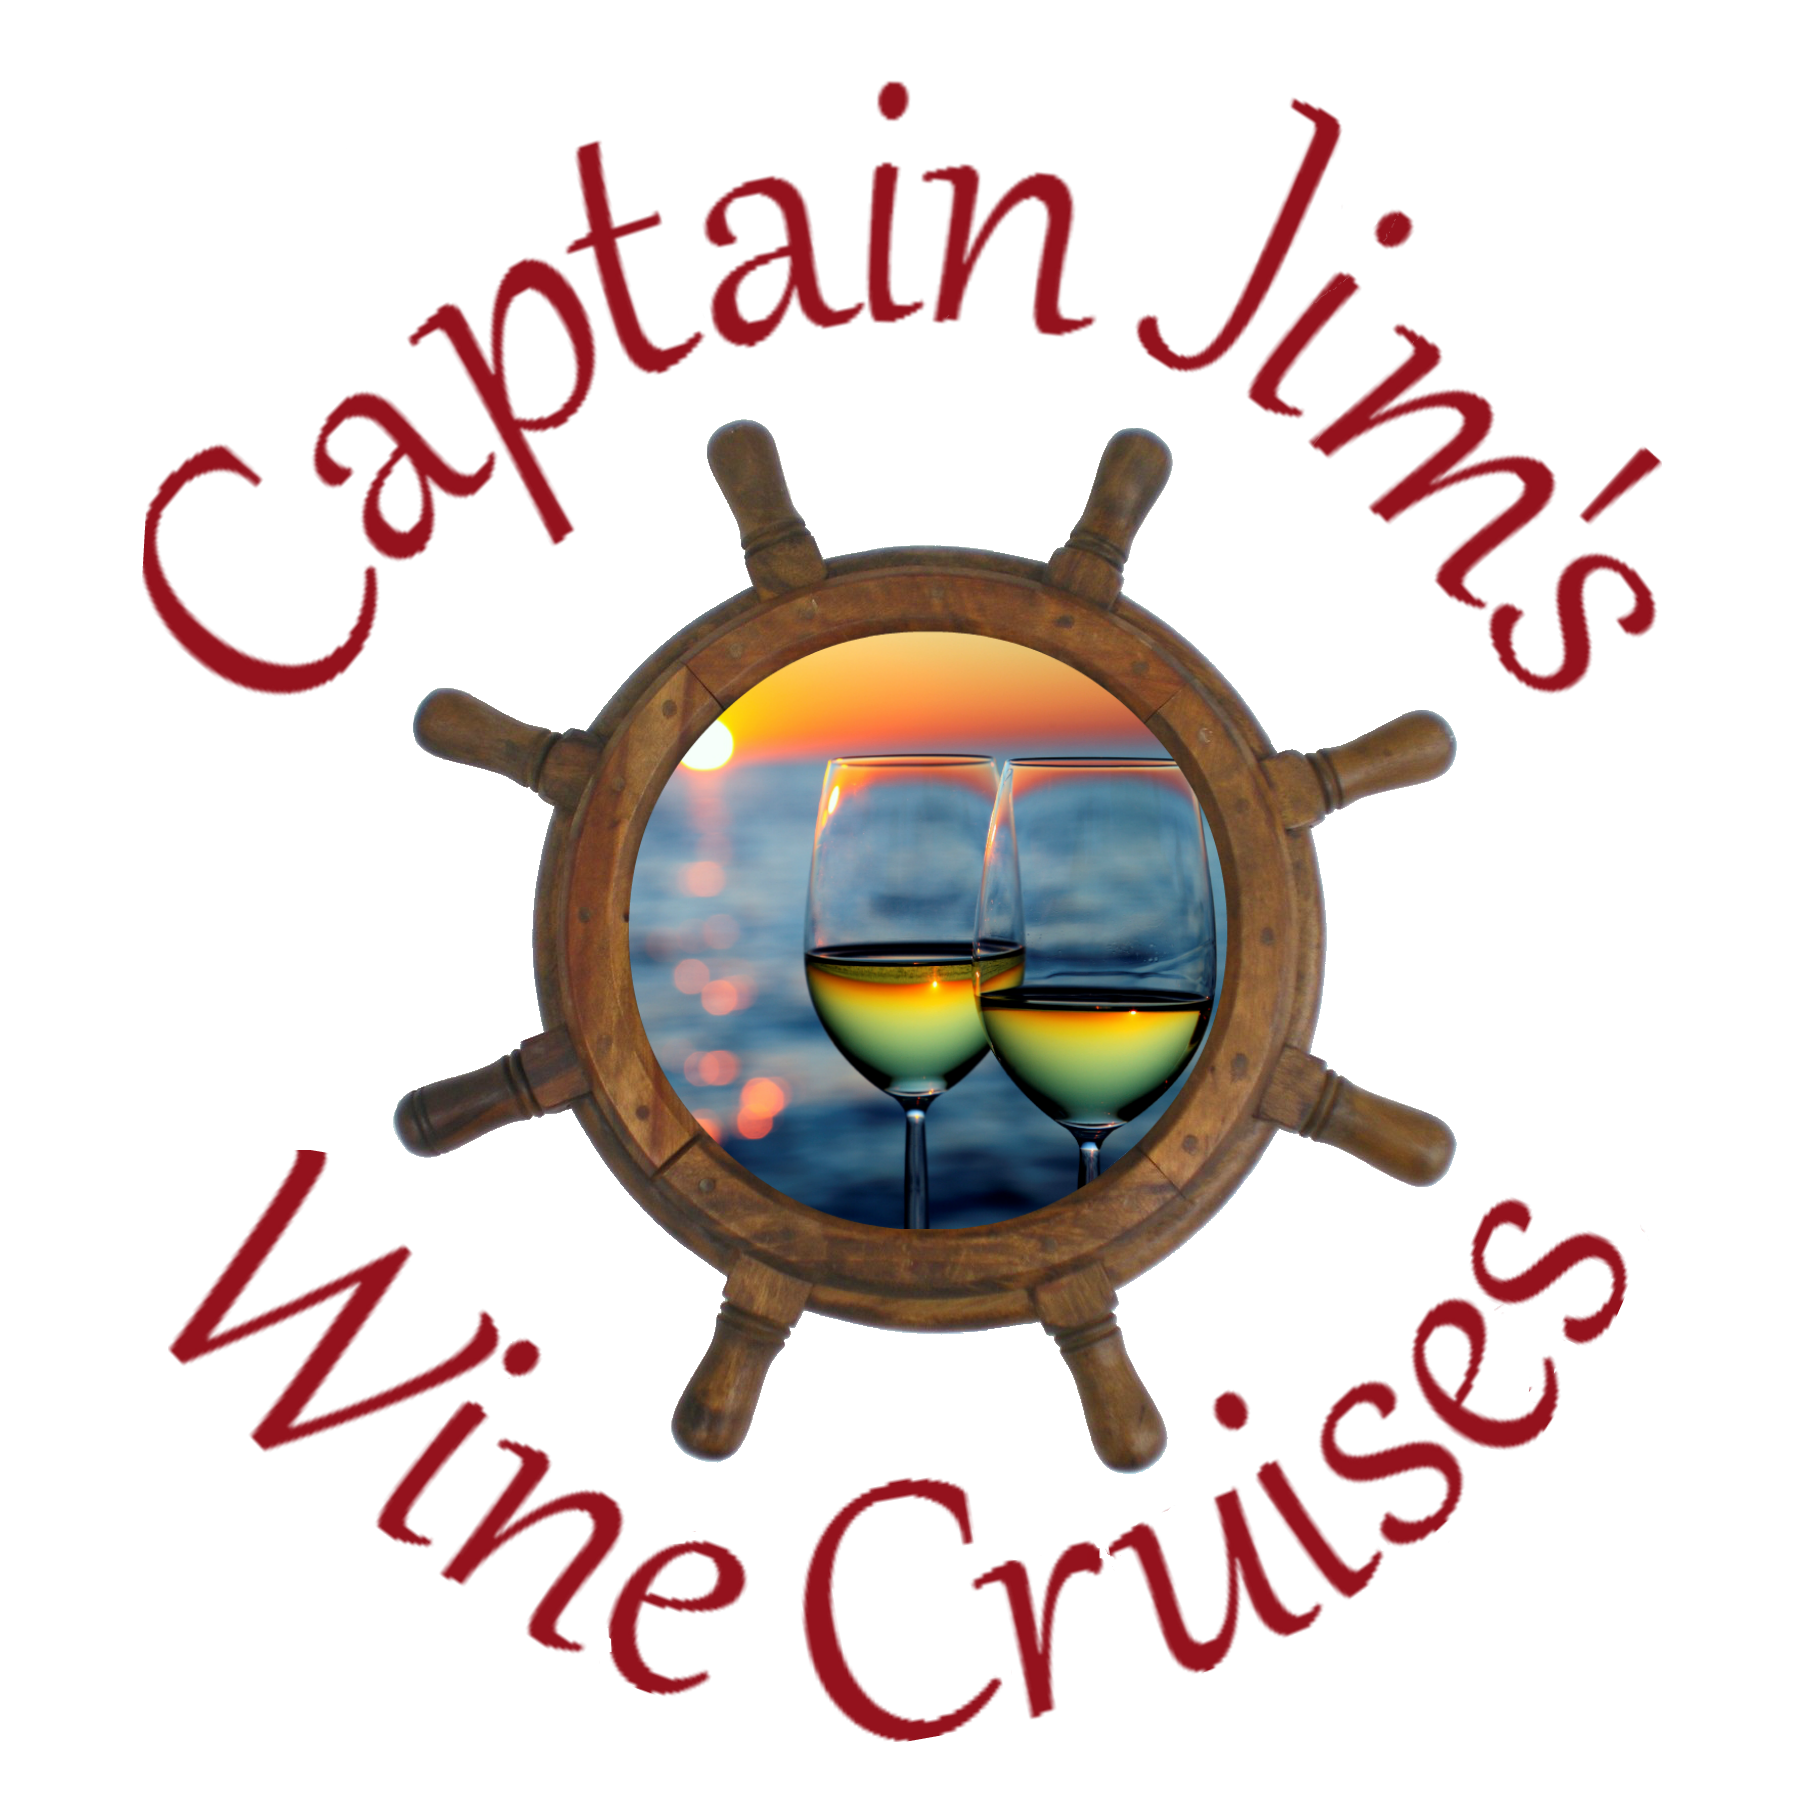 Captain Jim's Wine Crusises